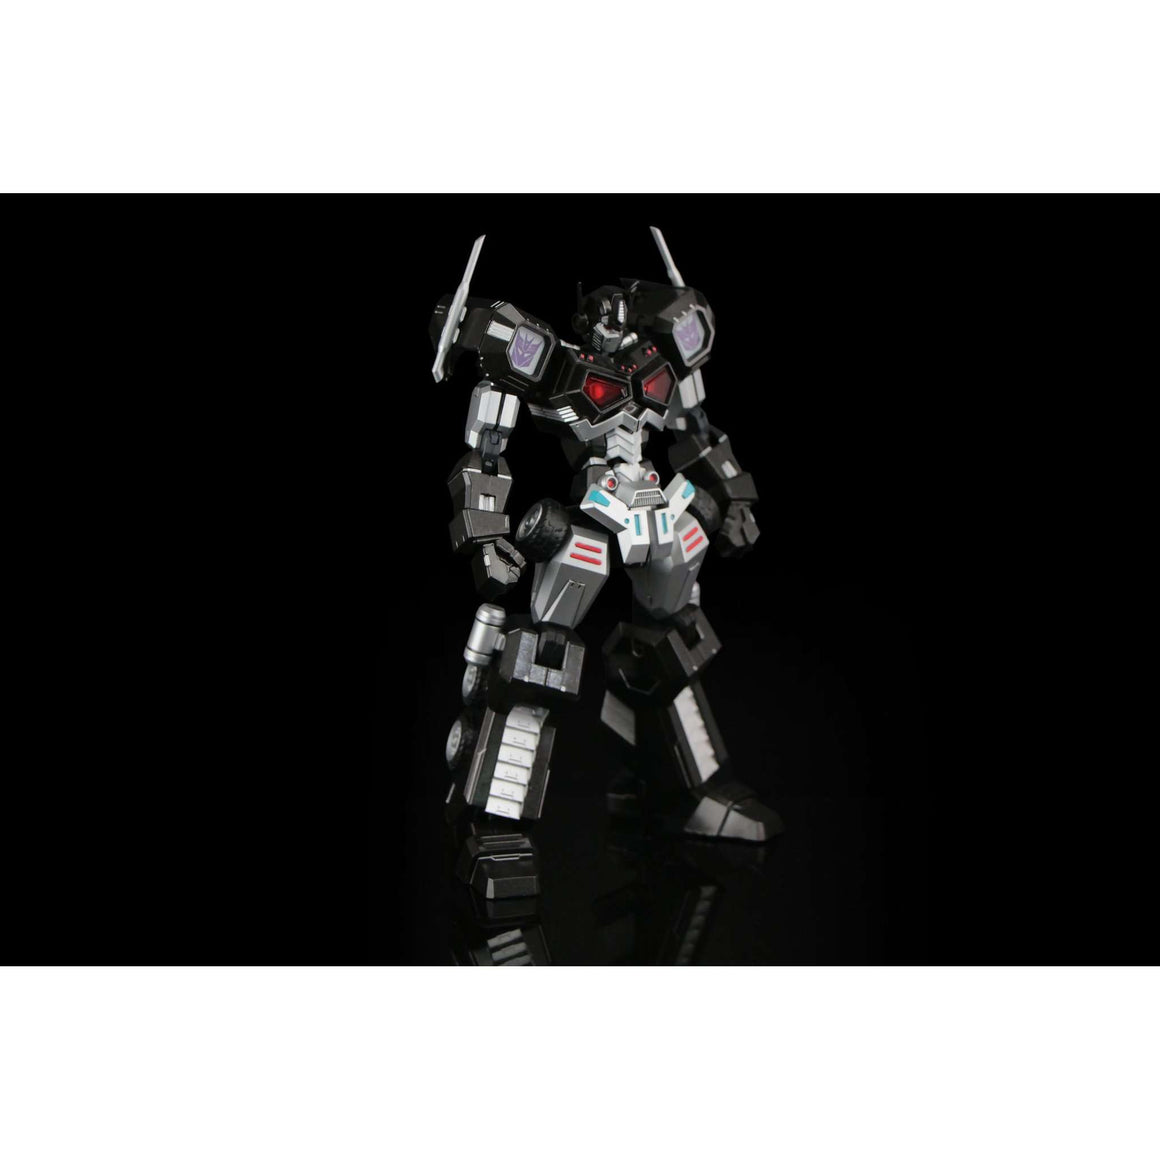 Transformers Furai 01 Nemesis Prime (Attack Mode) Model Kit